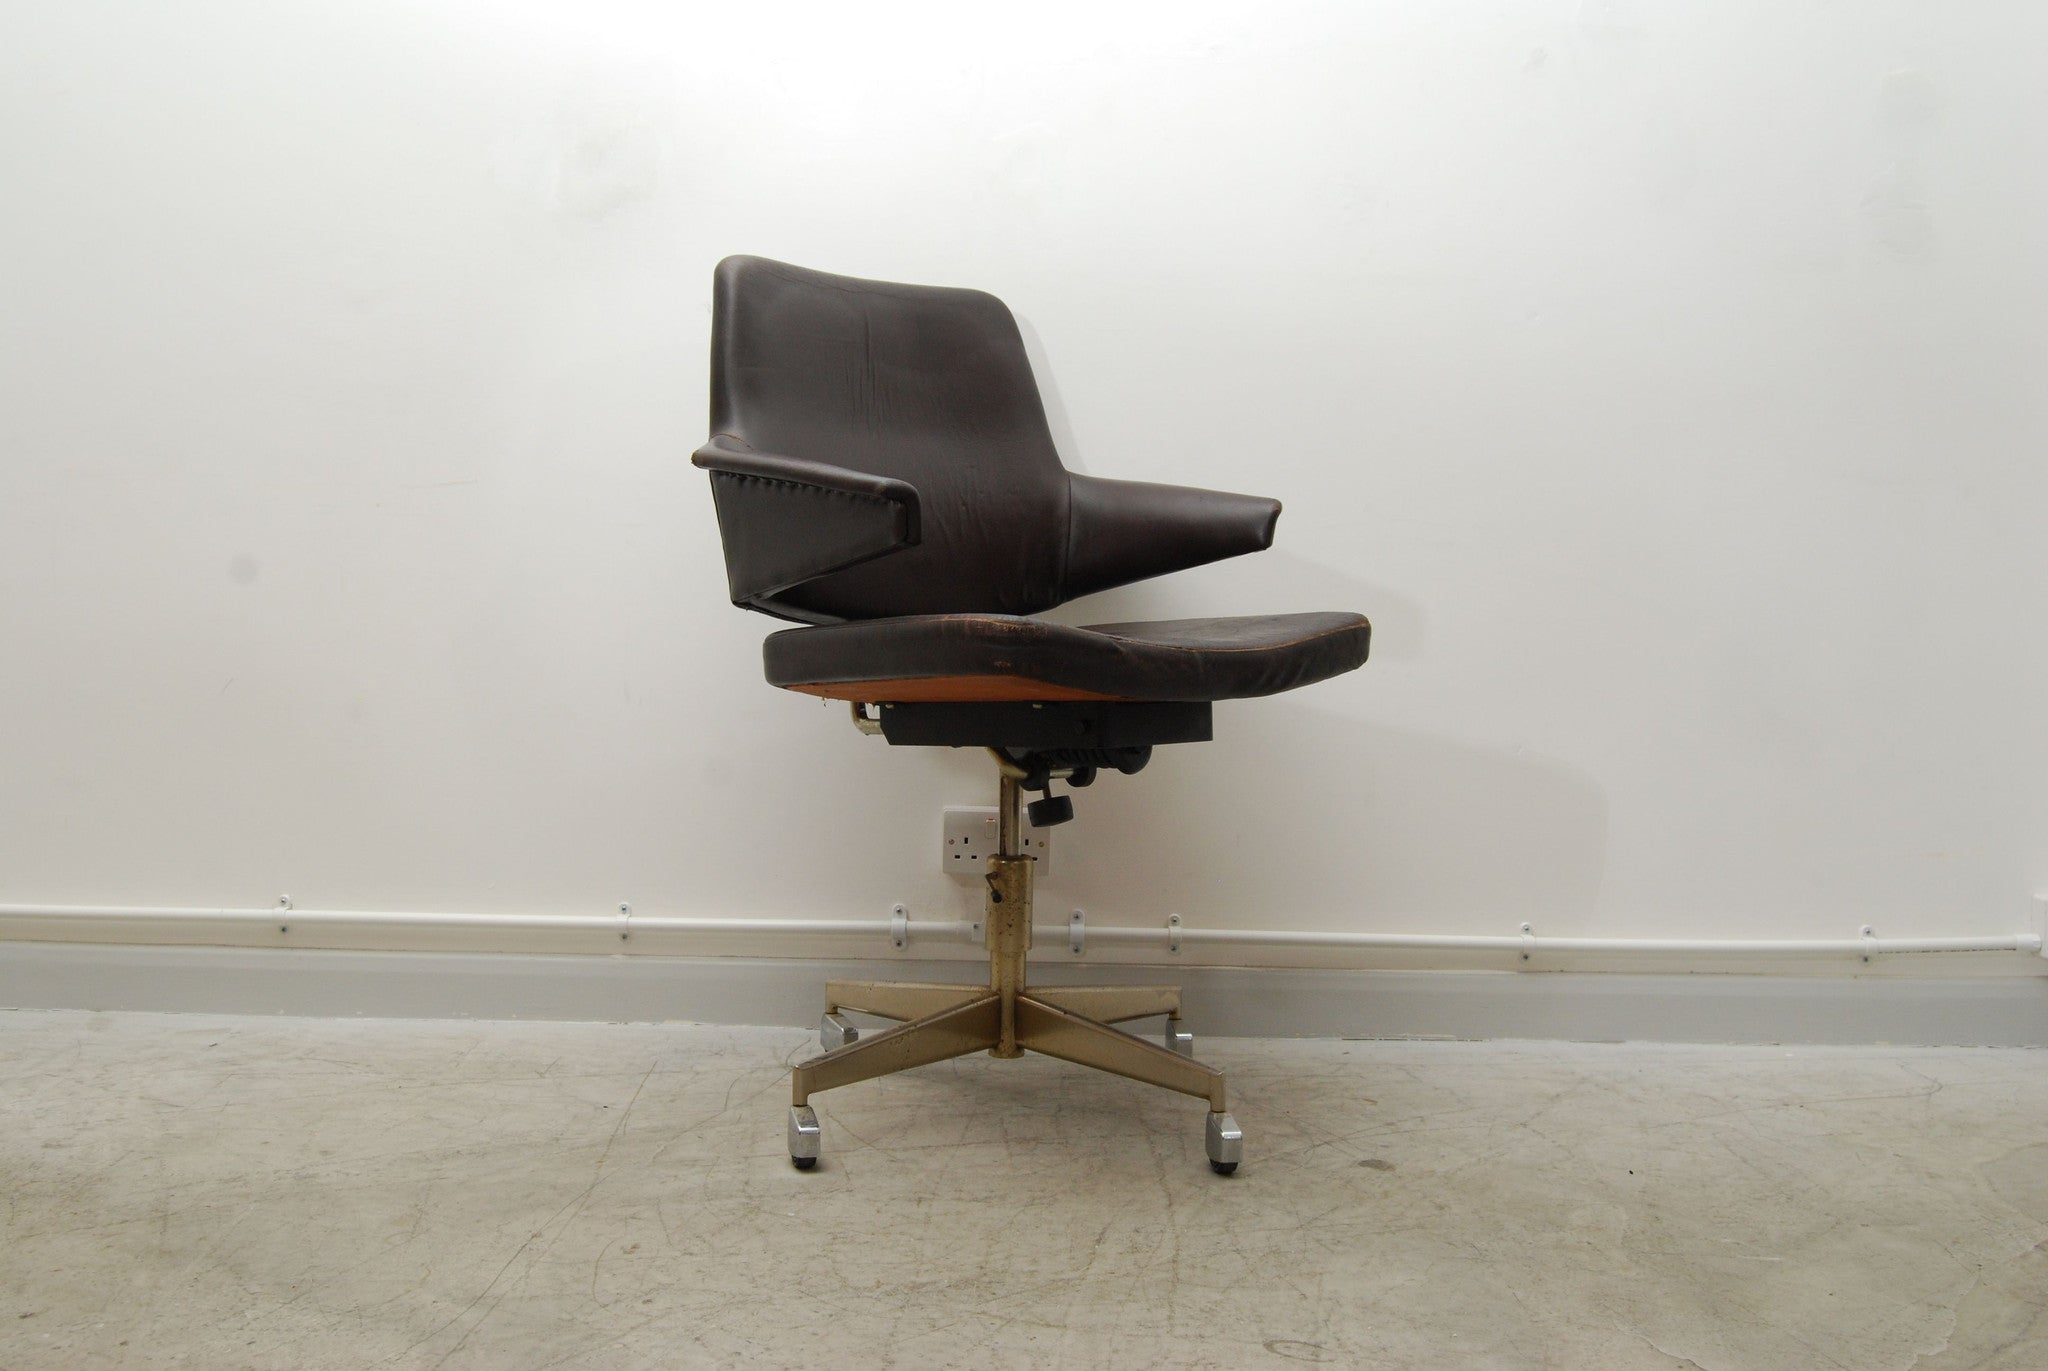 Swivelling desk chair with winged arms